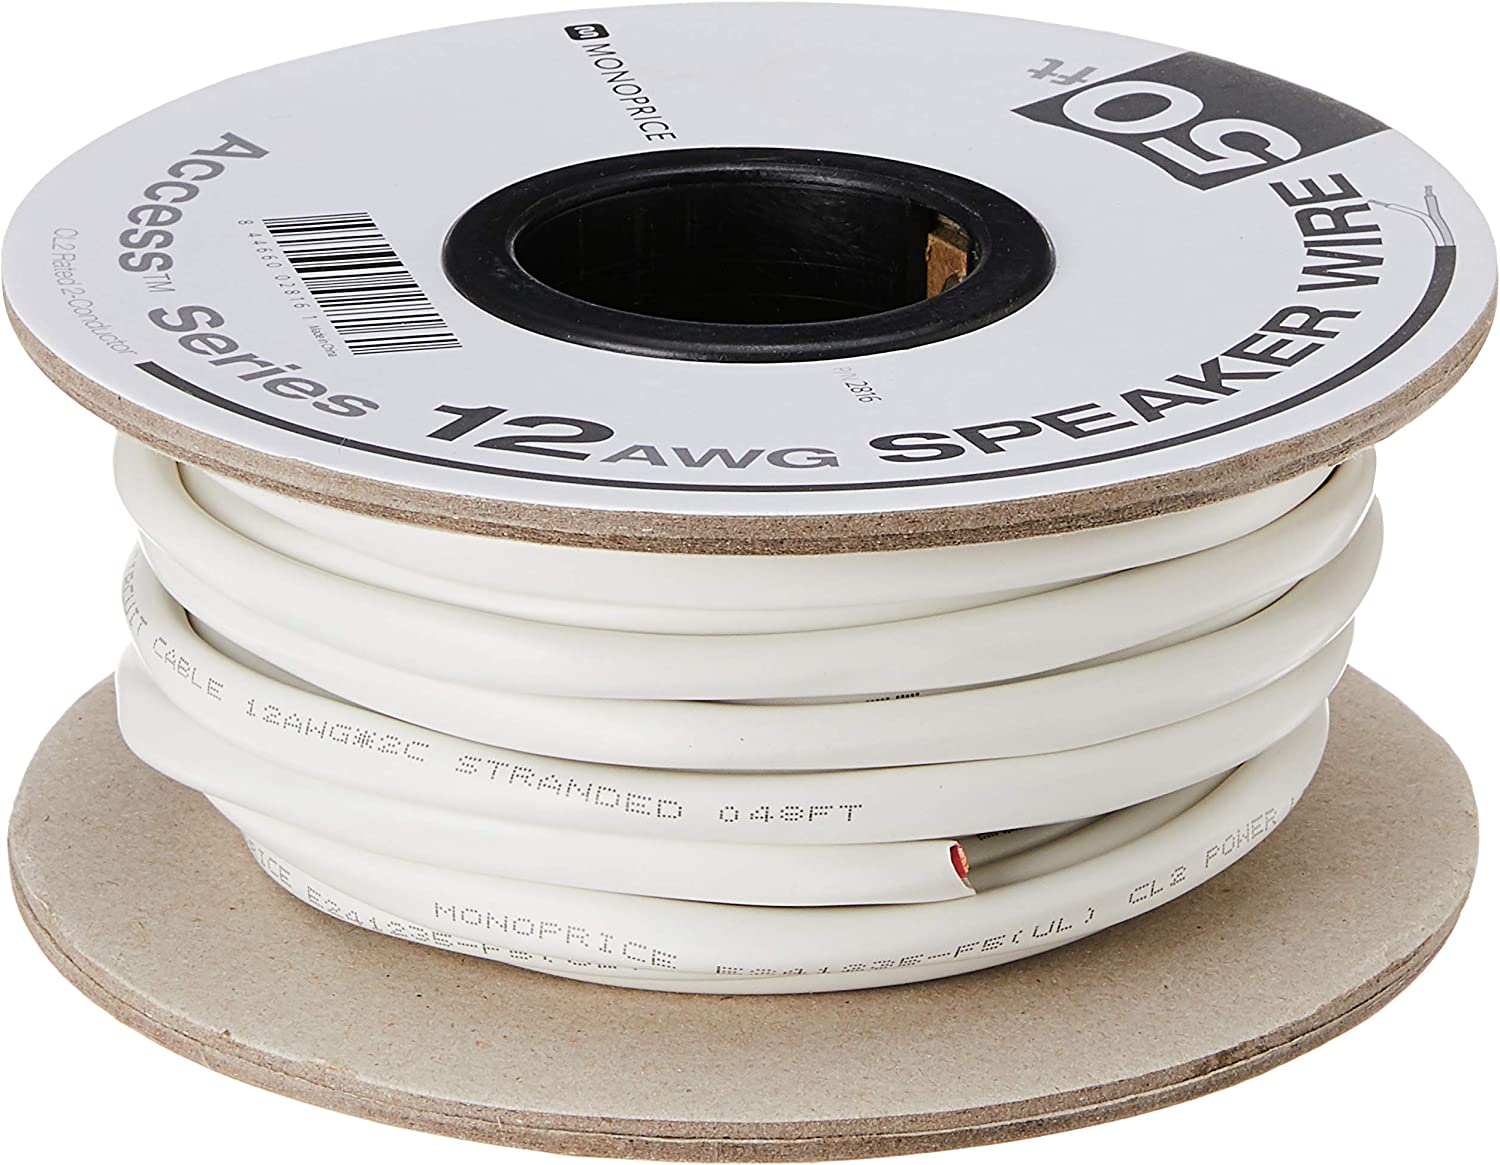 Monoprice Access Series 12 Gauge AWG CL2 Rated 2 Conductor Speaker Wire/ Cable - 50ft Fire Safety In Wall Rated, Jacketed In White PVC material 99.9% Oxygen-Free Pure Bare Copper